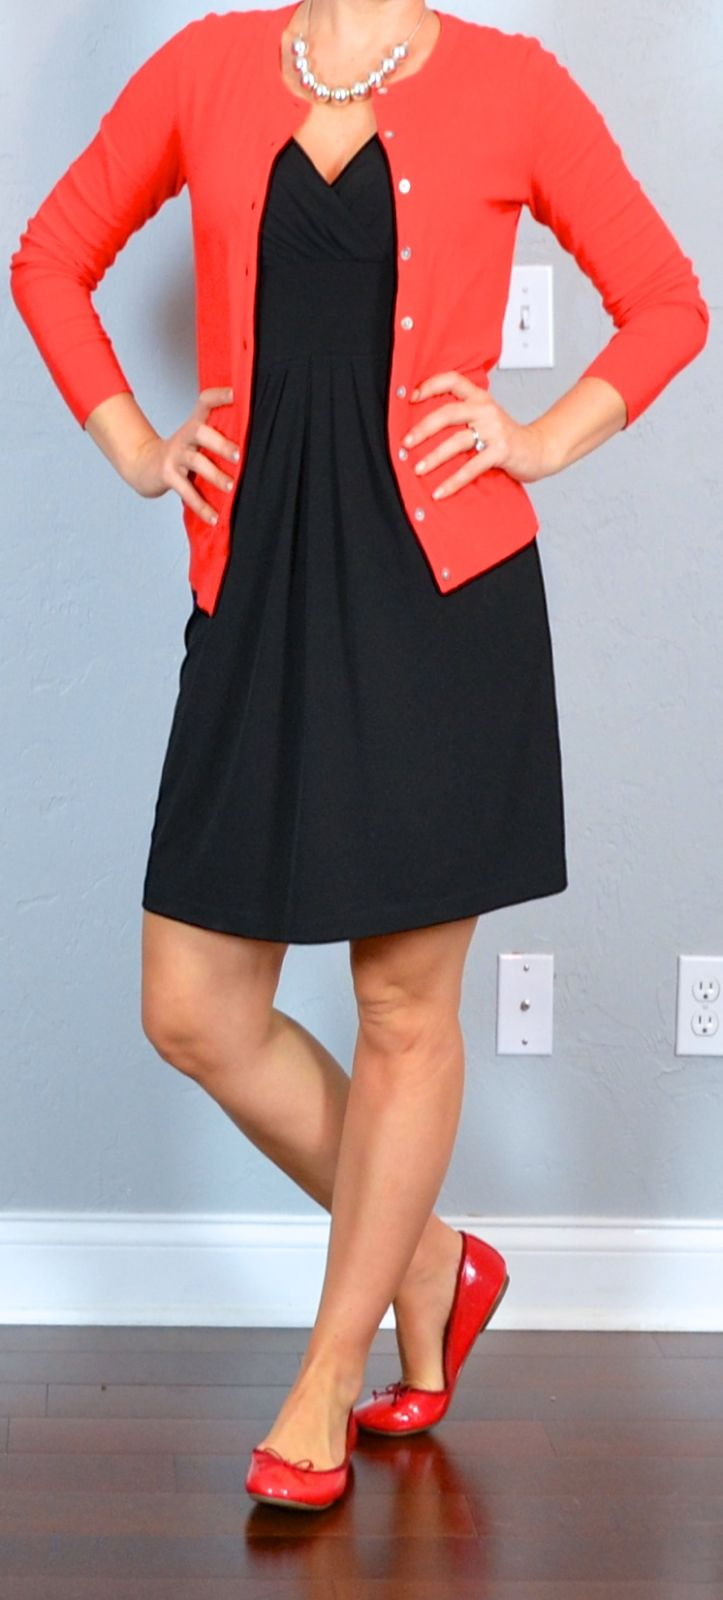 dress    post   Outfit Cardigans  online red shoes Outfit flats cheap outfit ballet black Cardigan cardigan  Red Posts  red and